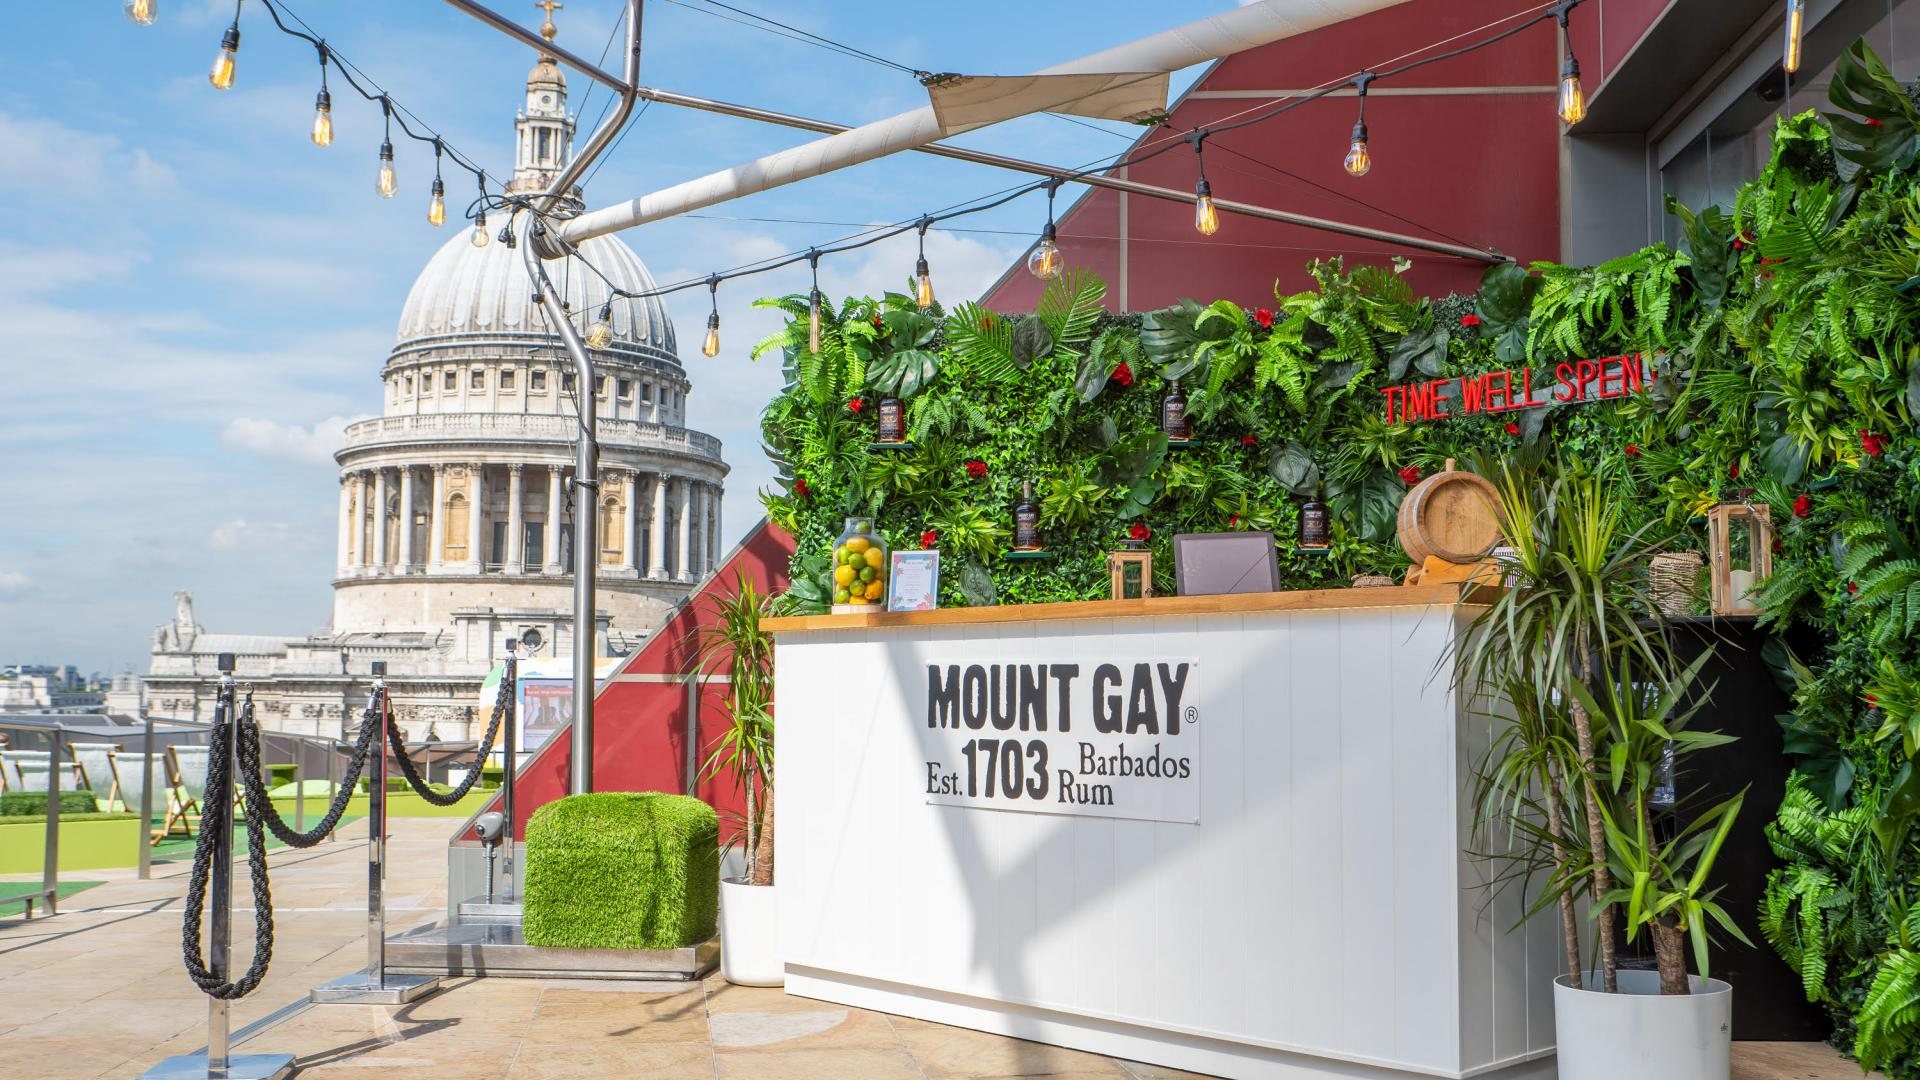 Mount Gay Summer Terrace at Madison